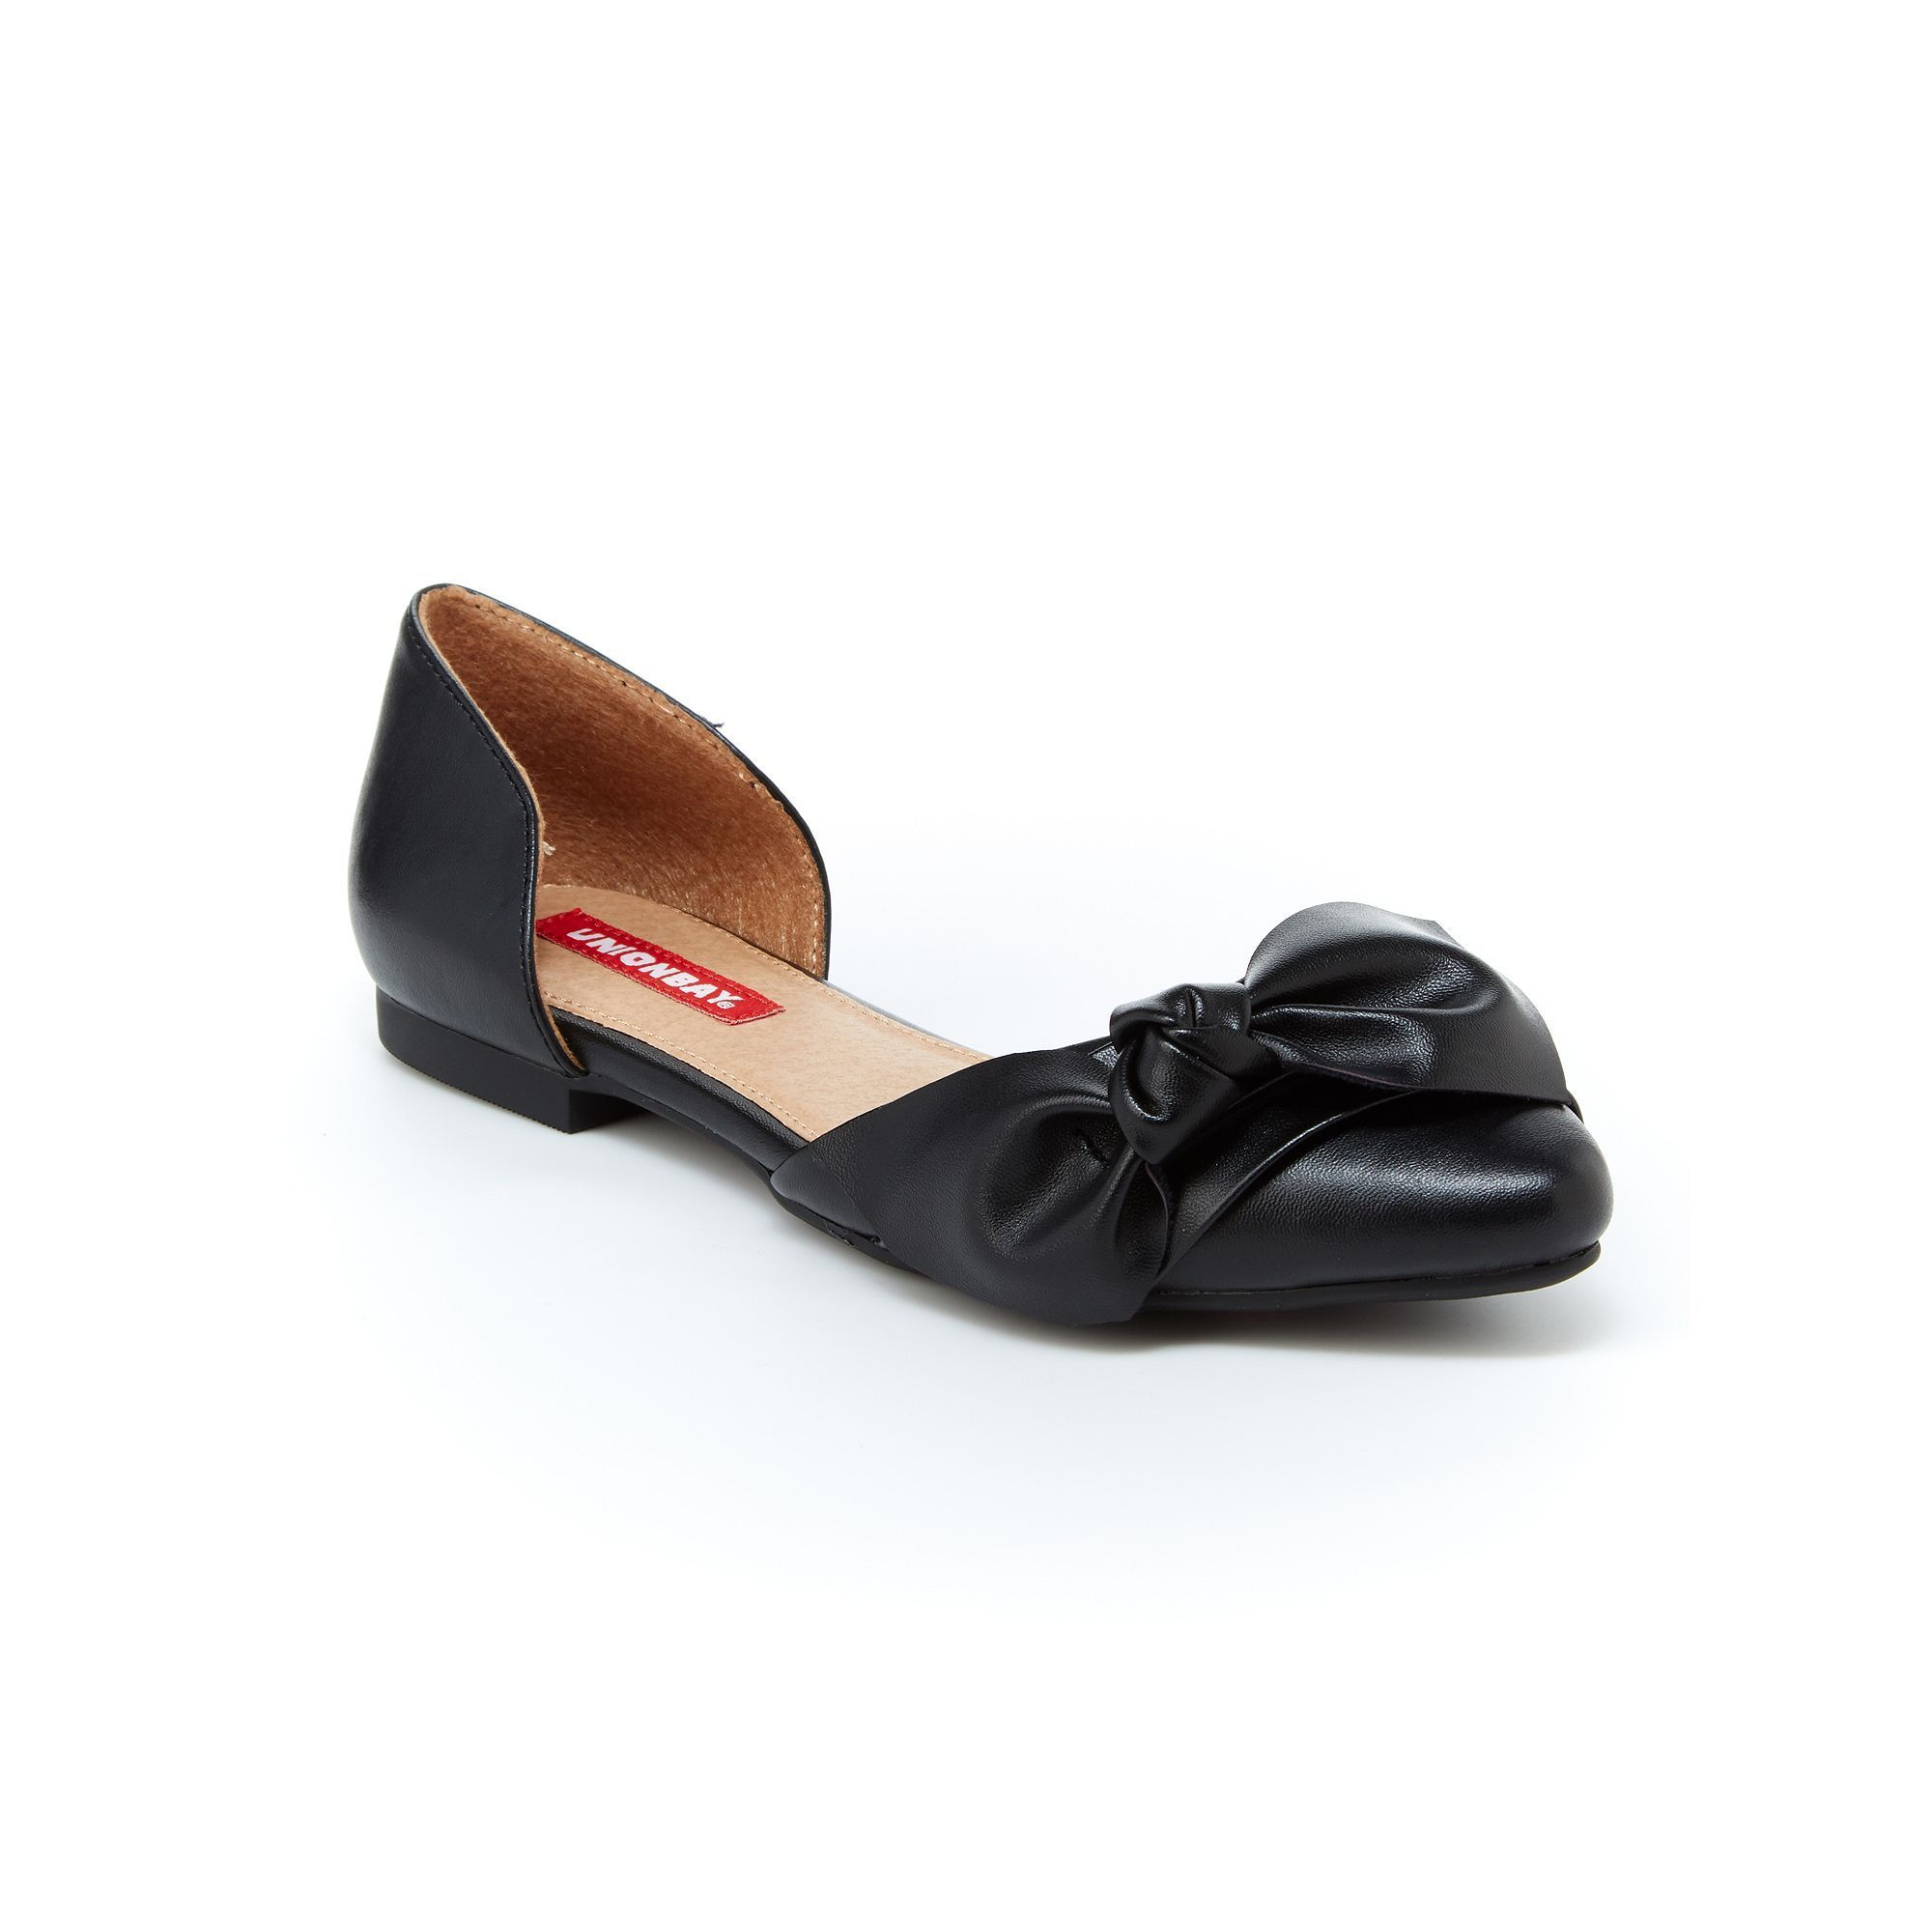 Unionbay Whisper Women's ... D'Orsay Flats clearance genuine sale supply buy cheap with mastercard 1YgjWqGYKC